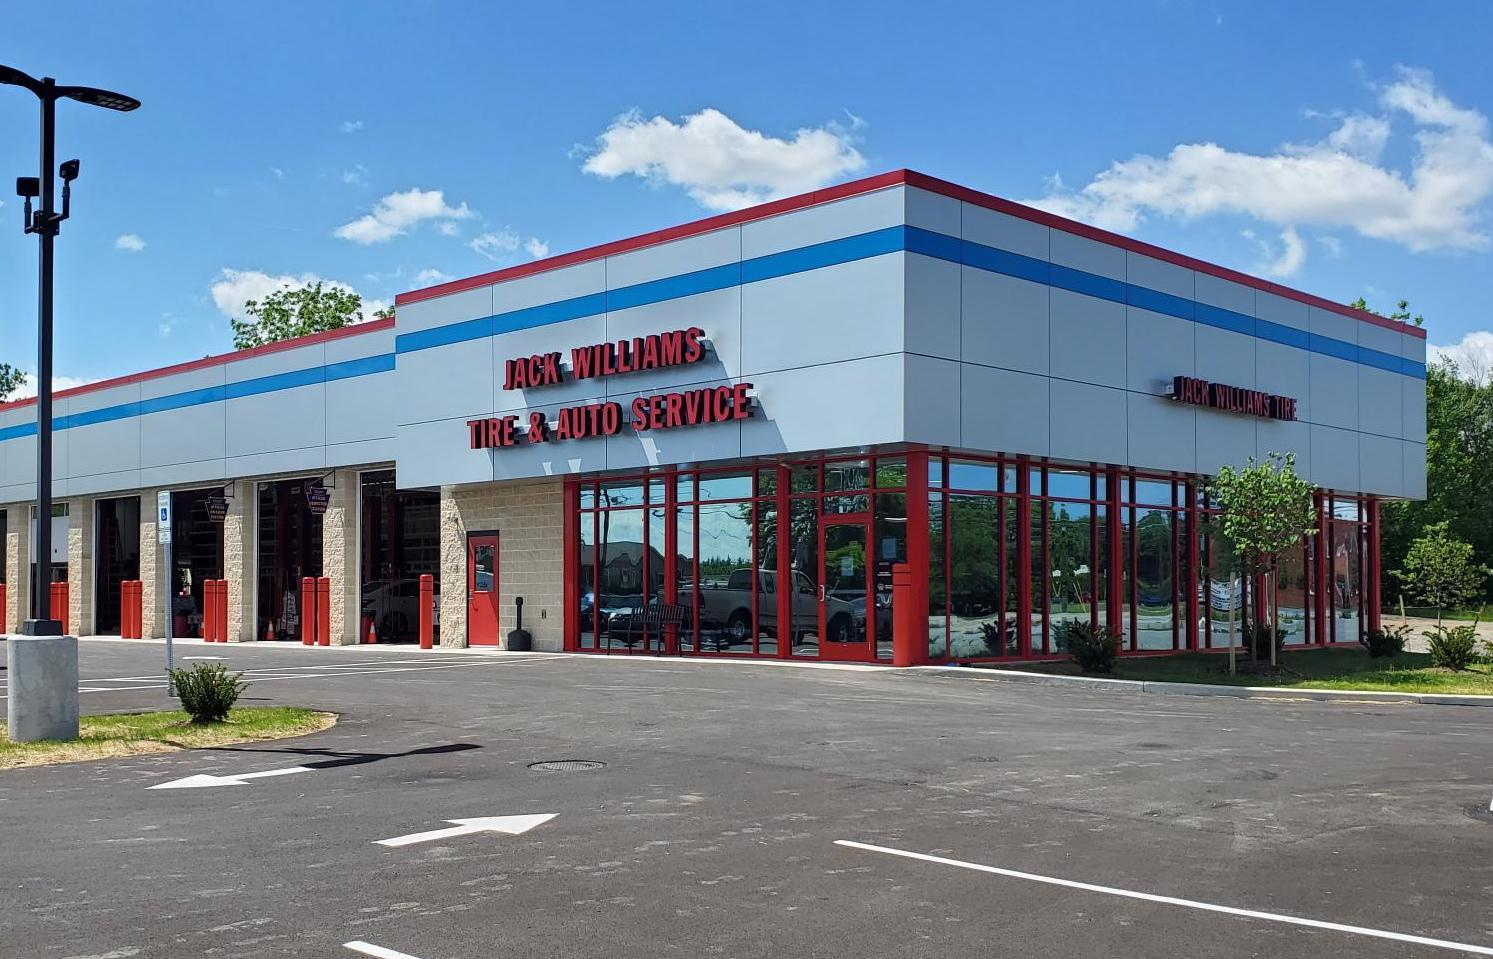 Jack Williams Tire has 39 shop and 11 warehouses in Pennsylvania